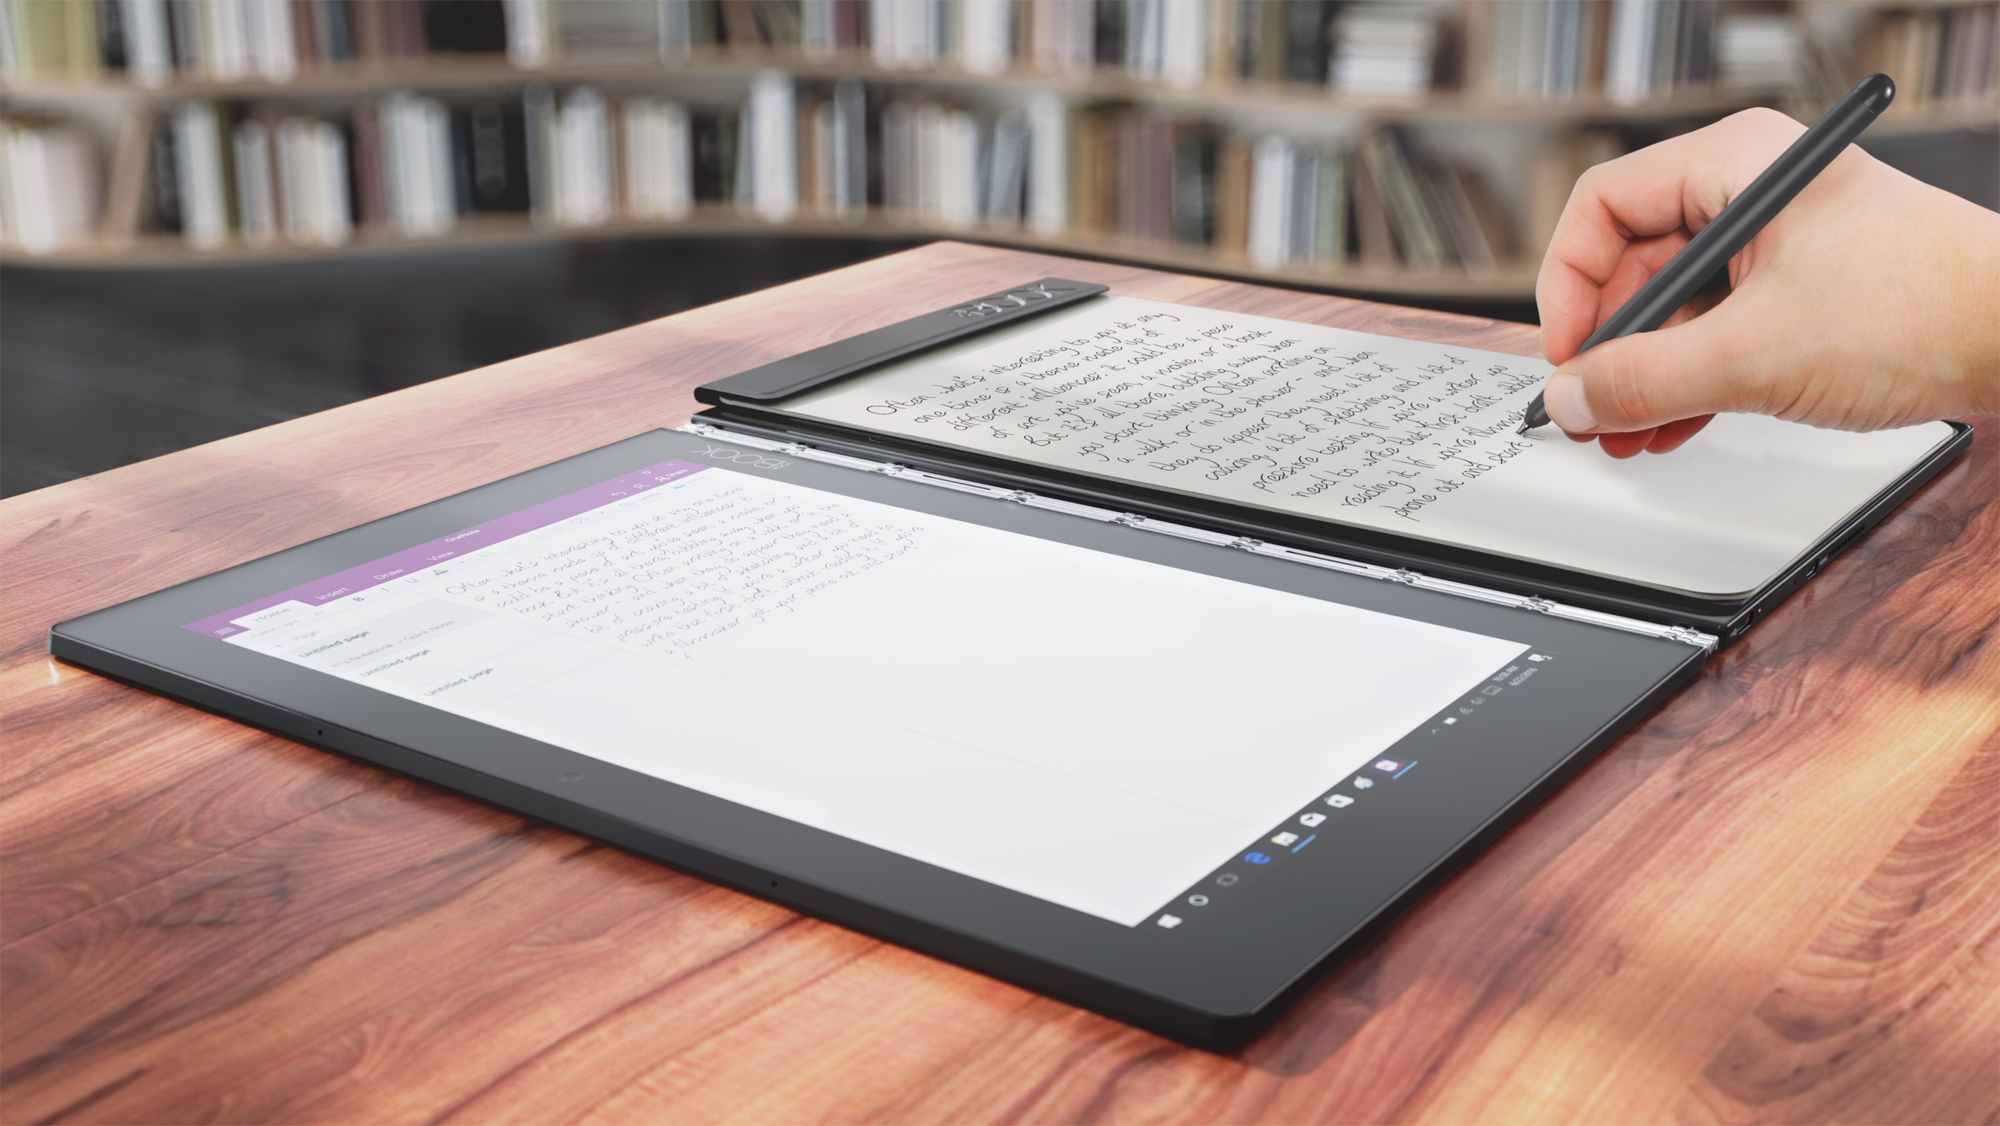 Lenovo Yoga Book è un rivoluzionario tablet che si crede un quaderno (foto e video)